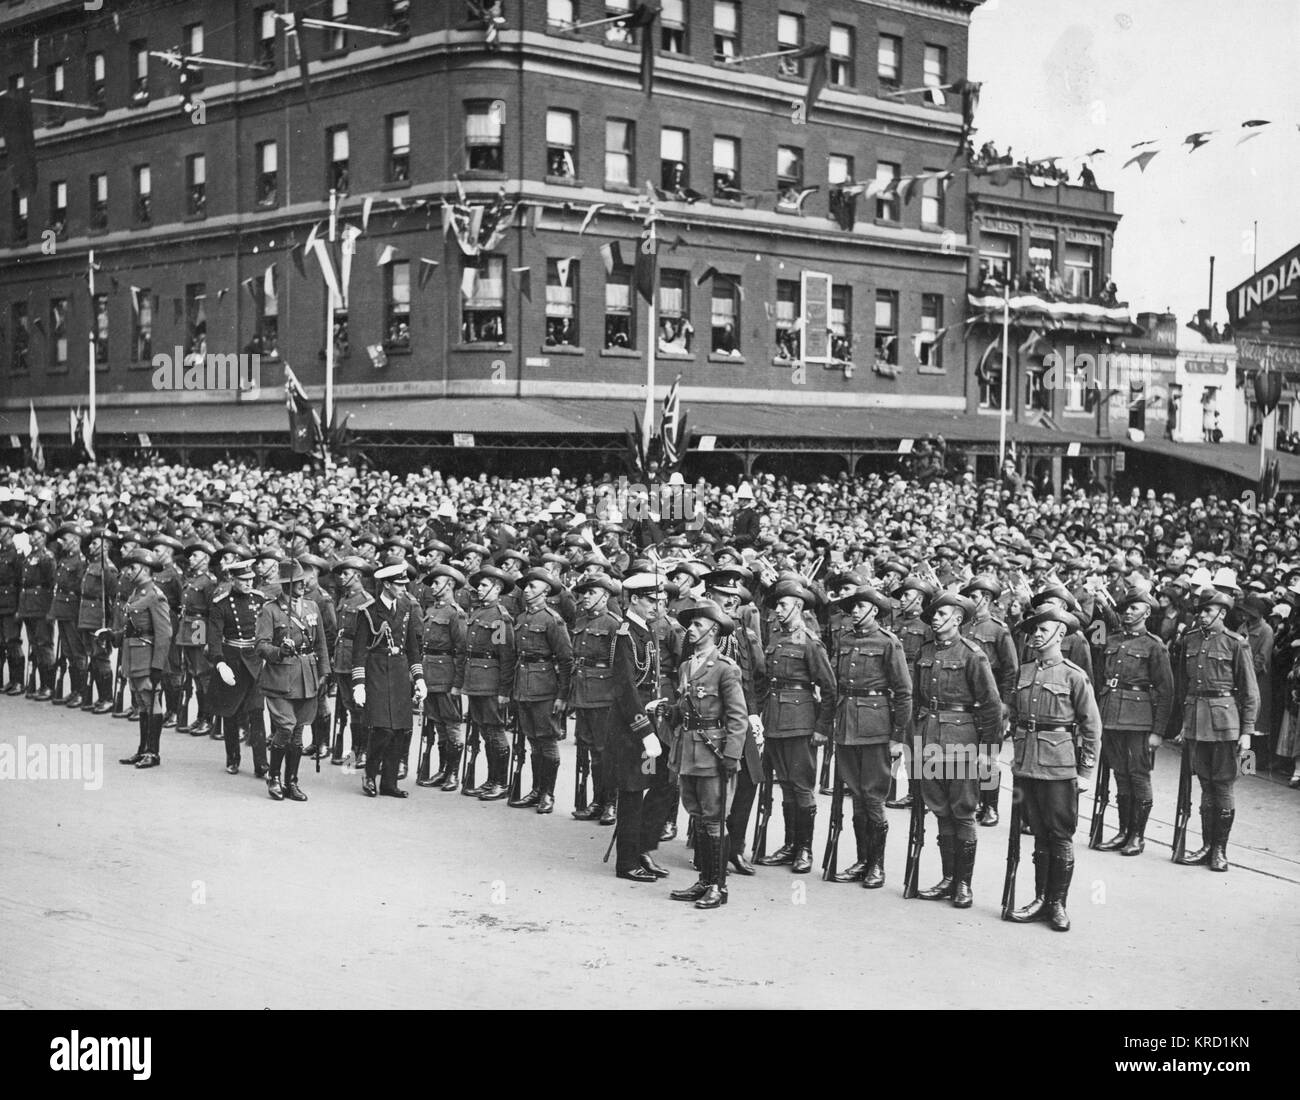 The Duke and Duchess of York (later King George VI and Queen Elizabeth) in Melbourne, Australia, on Anzac Day.  - Stock Image